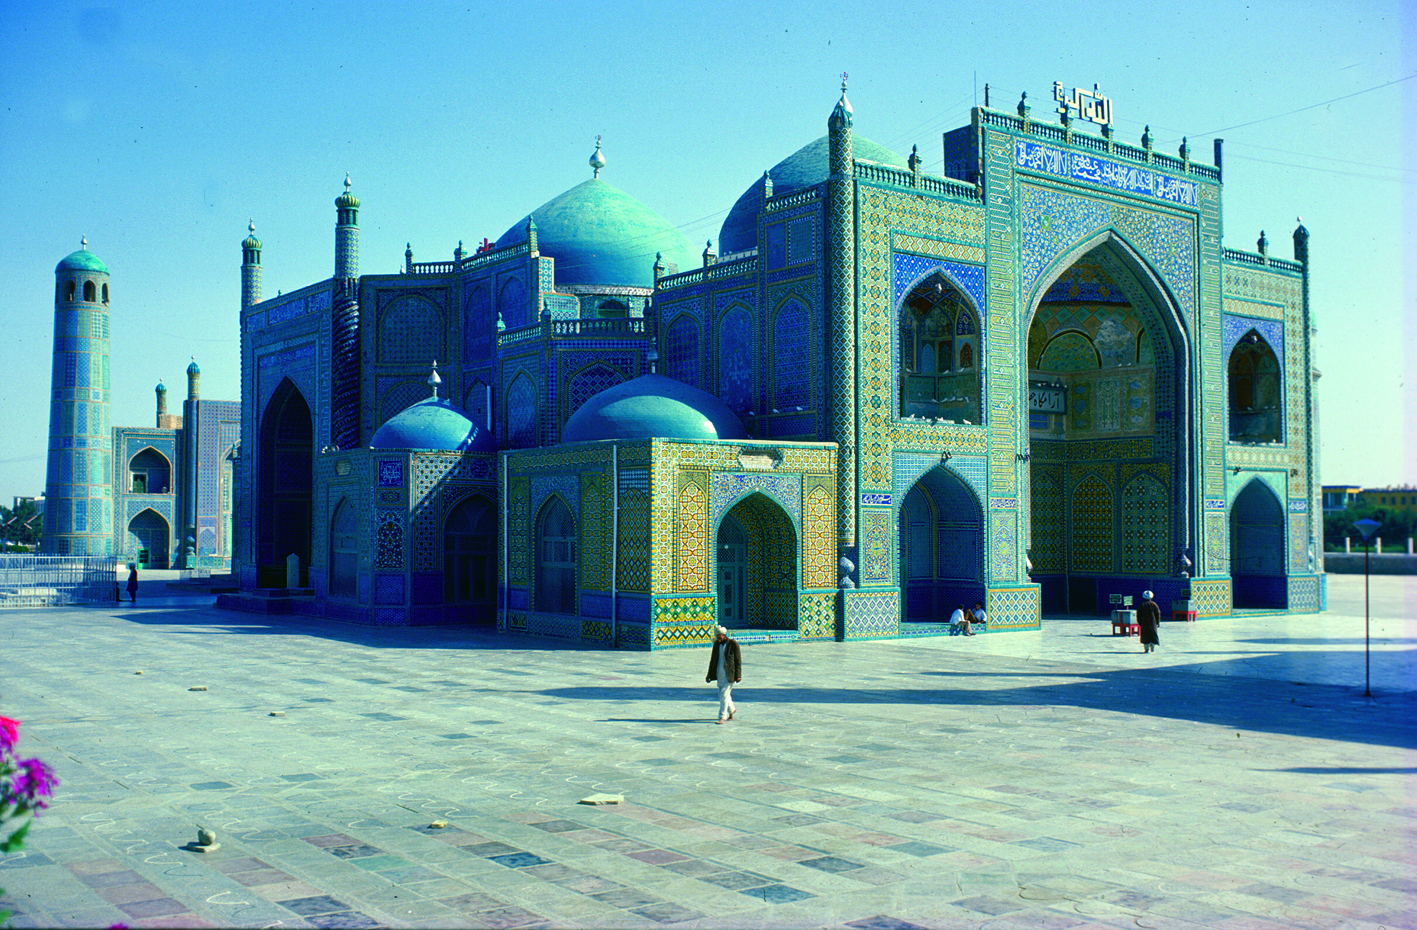 Islam was introduced in present-day Afghanistan when the Arabs conquered the area i 642. The mosque in the photo is called Hazrat Ali and is located in Mazar-i-Sharif. This shrine is considered the burial place of the prophet Mohammed's son-in-law. Photo: Moesgaard Museum archives